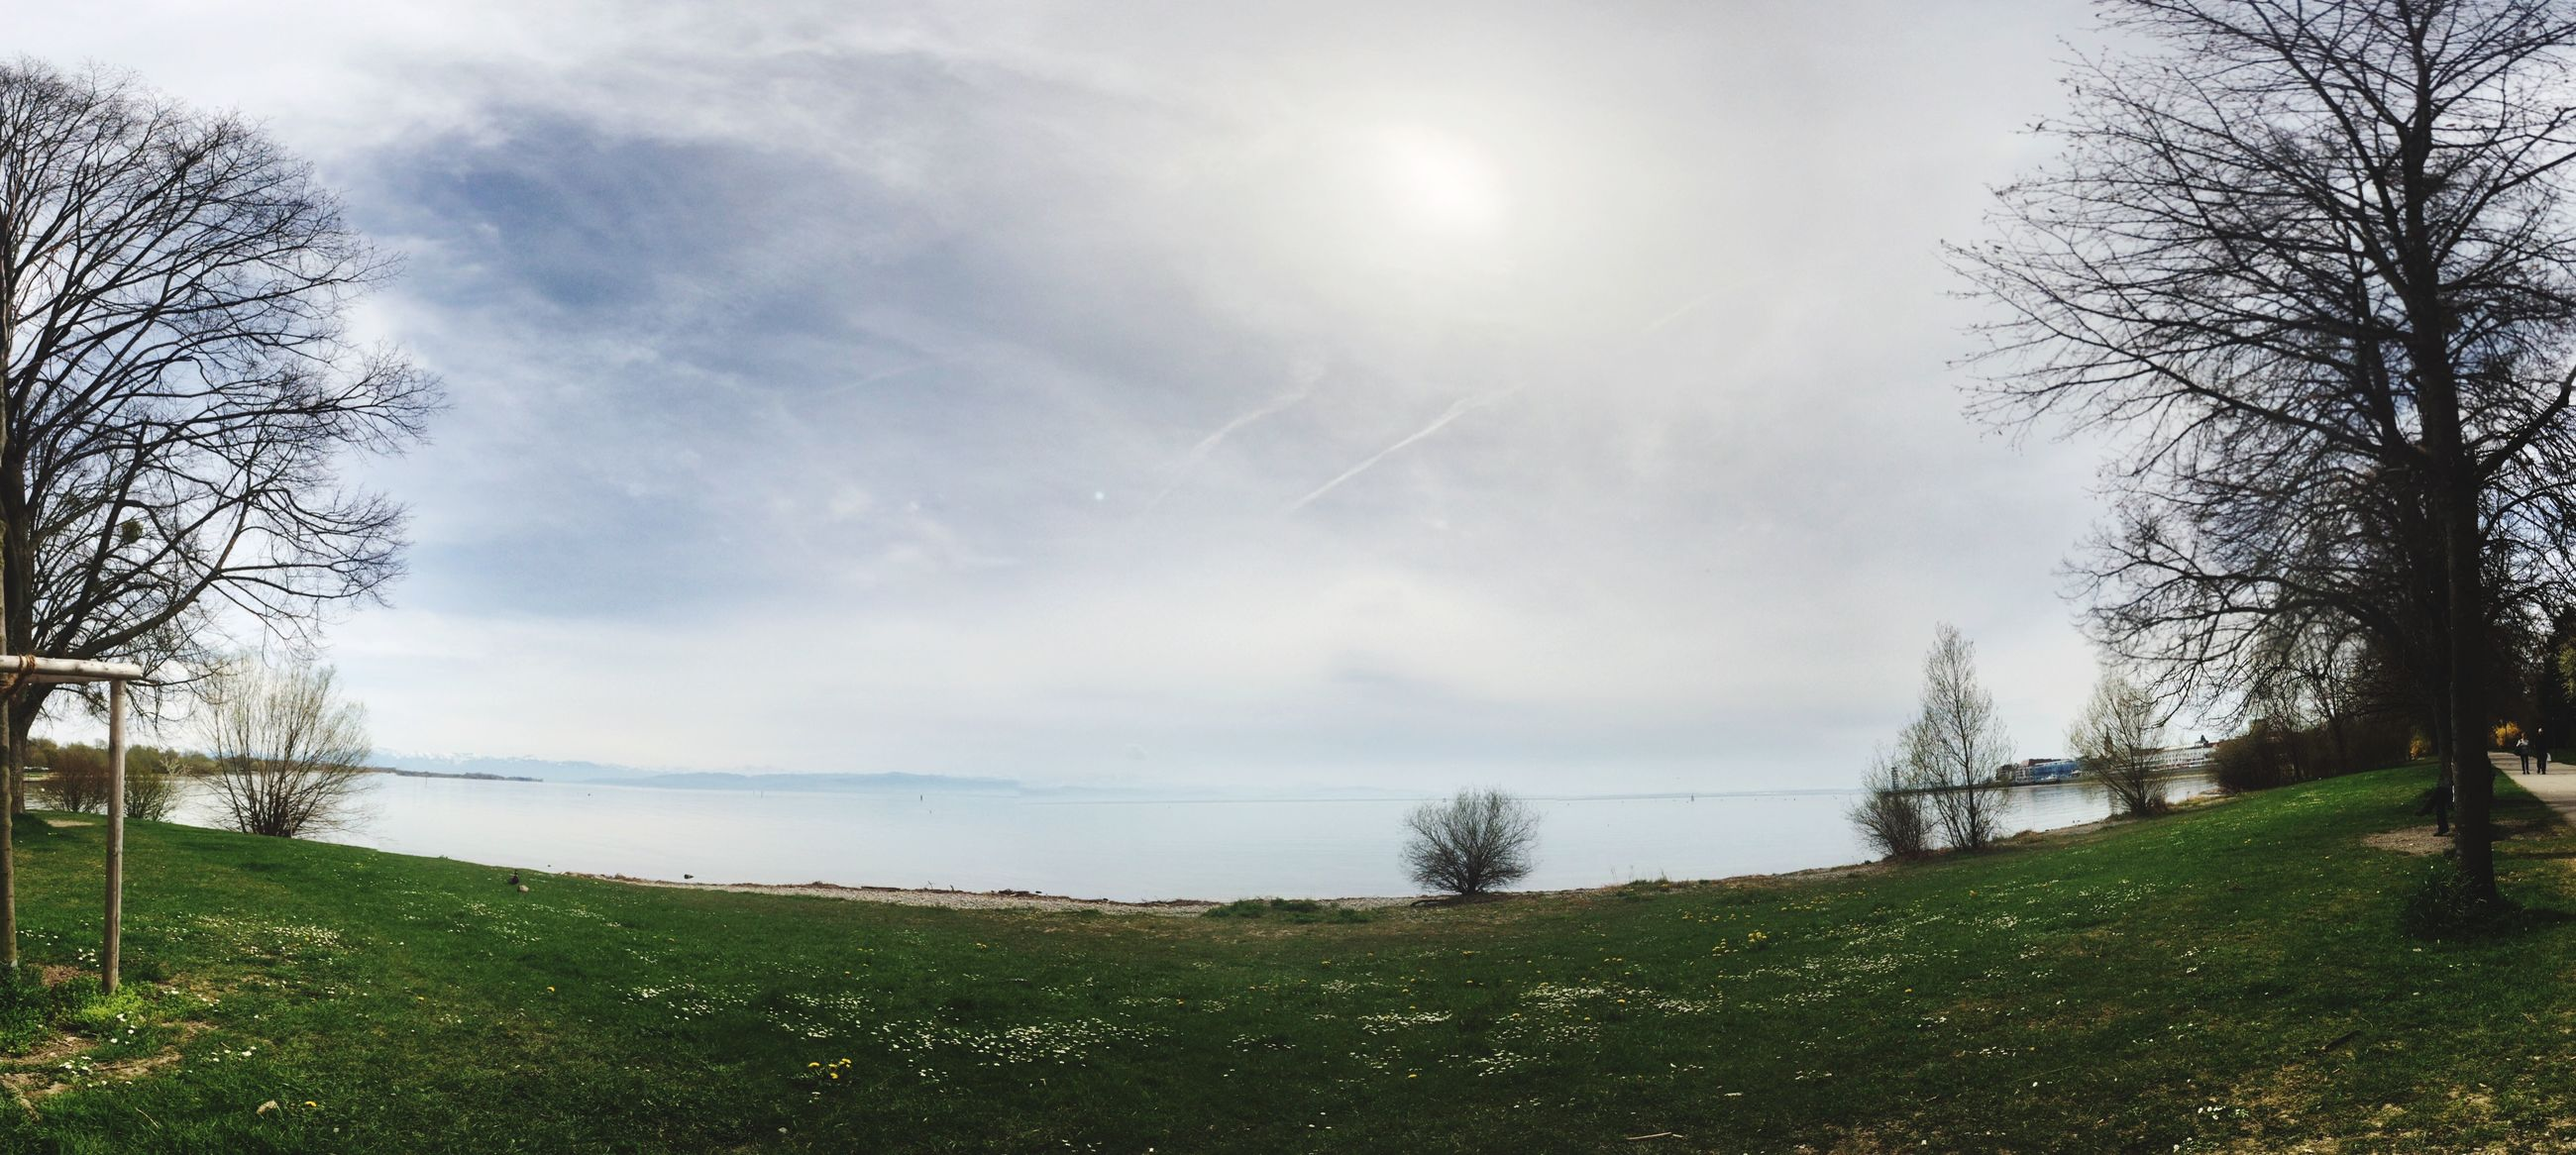 tree, sky, tranquility, tranquil scene, grass, scenics, bare tree, beauty in nature, nature, cloud - sky, water, branch, field, landscape, grassy, growth, lake, idyllic, non-urban scene, cloudy